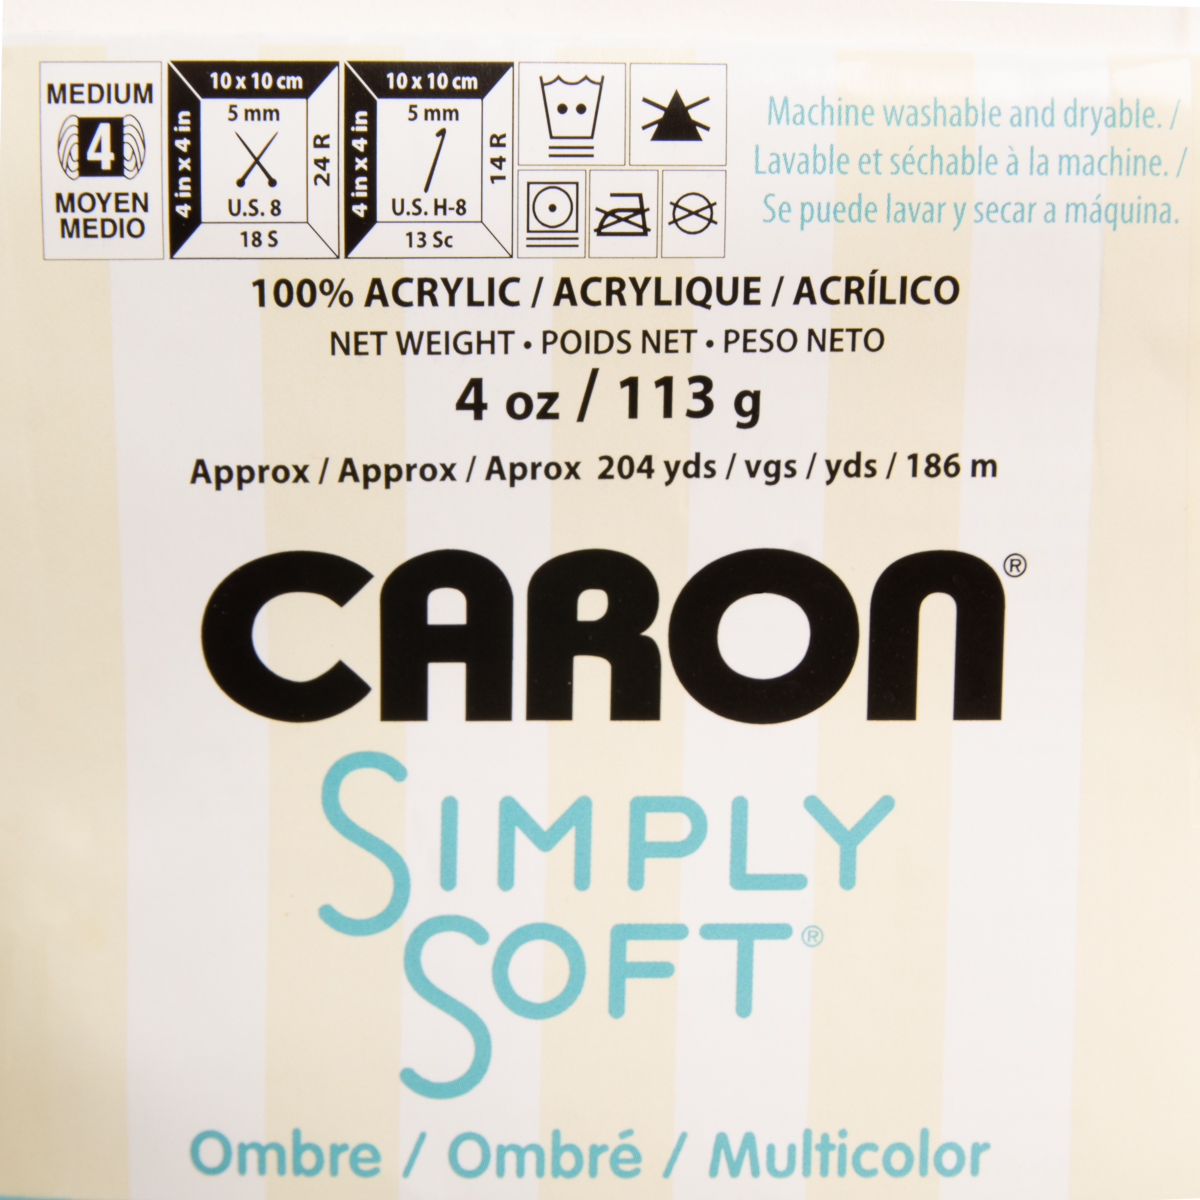 3pk-Caron-Simply-Soft-100-Acrylic-Yarn-Medium-4-Knitting-Crocheting-Skein-Soft thumbnail 18